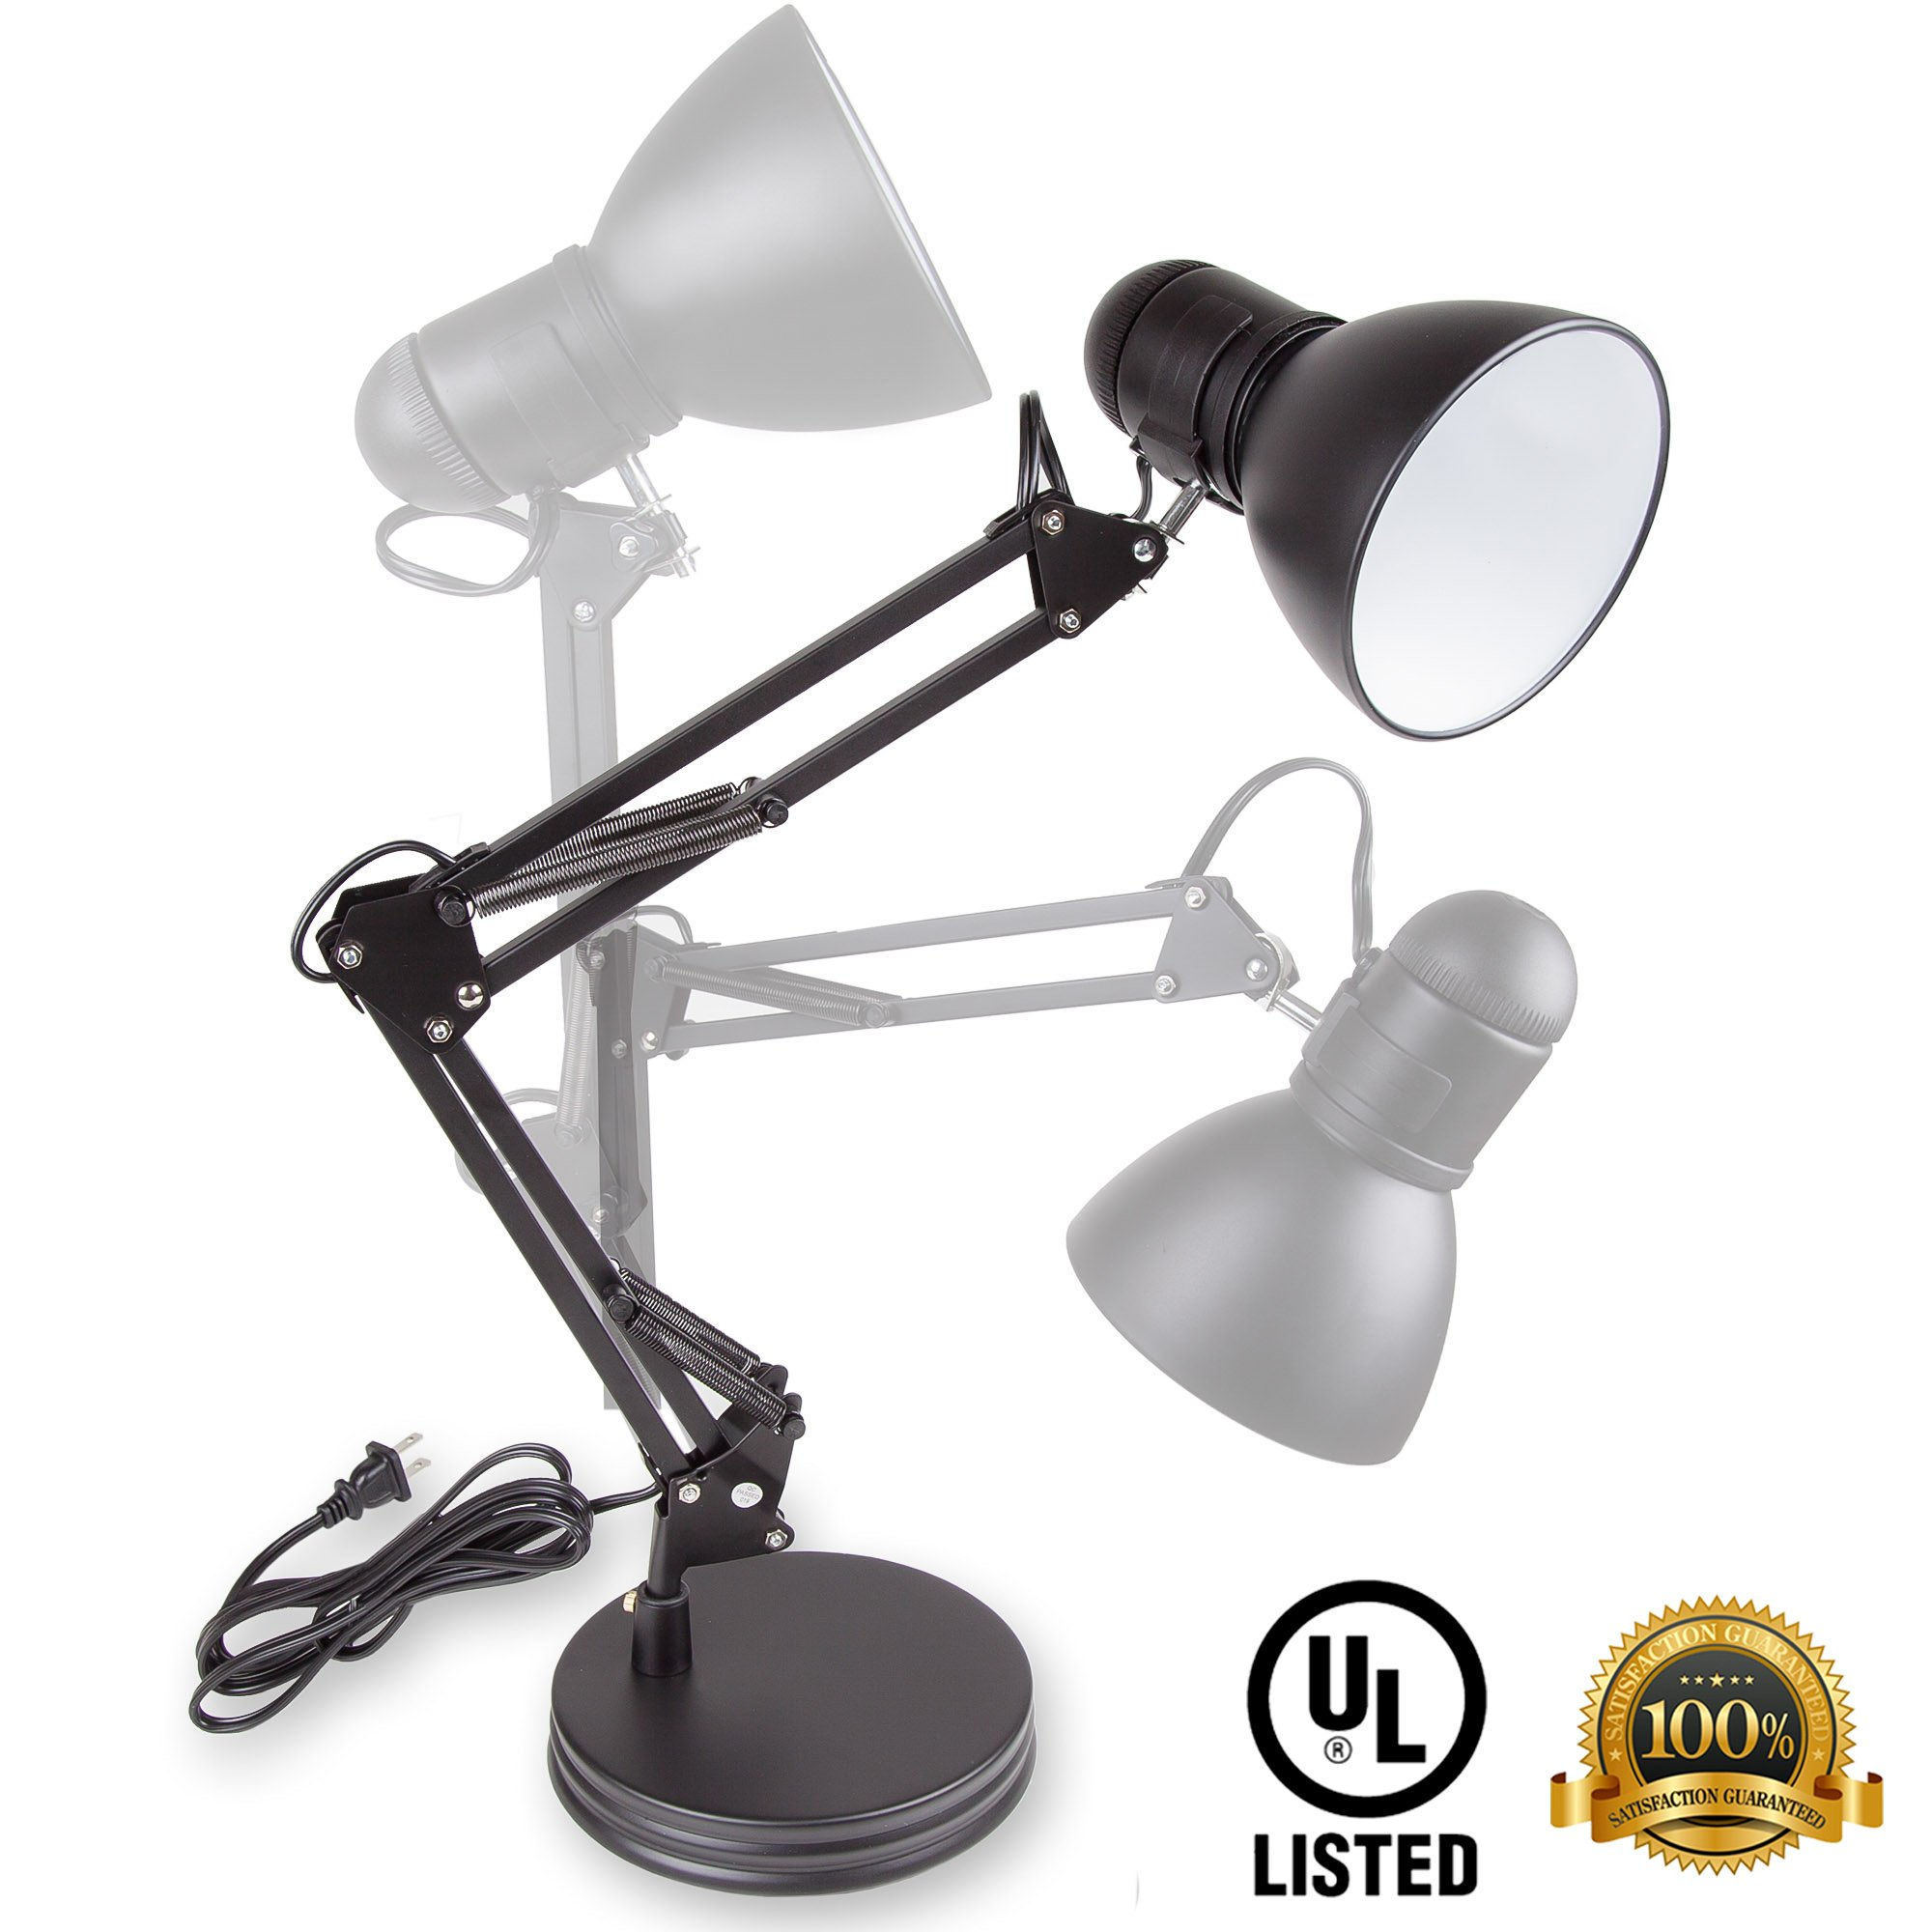 Home Intuition Desk Lamp with Swing Arm Architect Style, Black